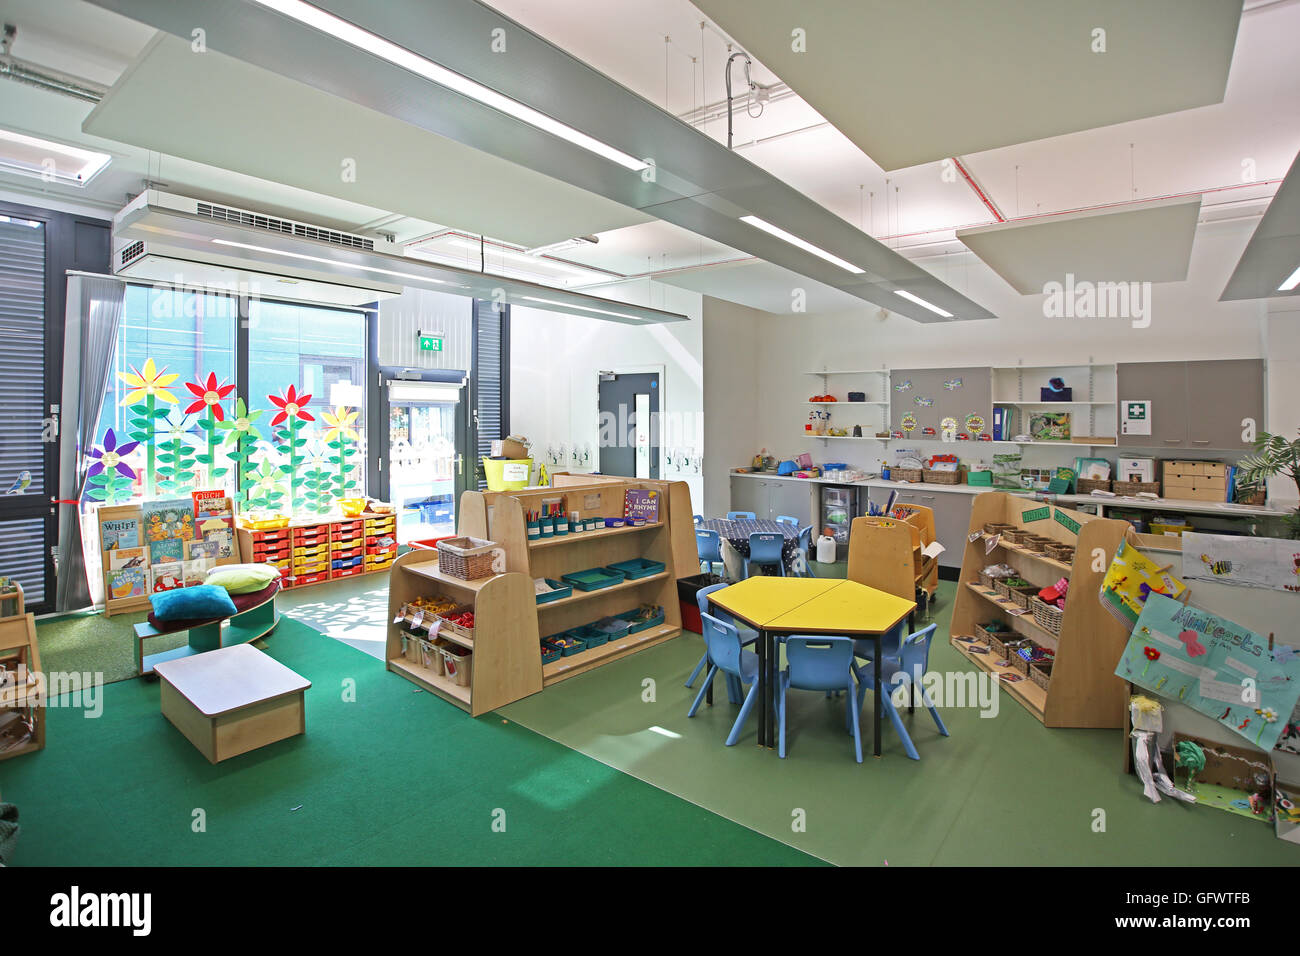 Nursery Classroom In A New London Primary School Shows Desks And Chairs With Pupils Artwork On The Walls